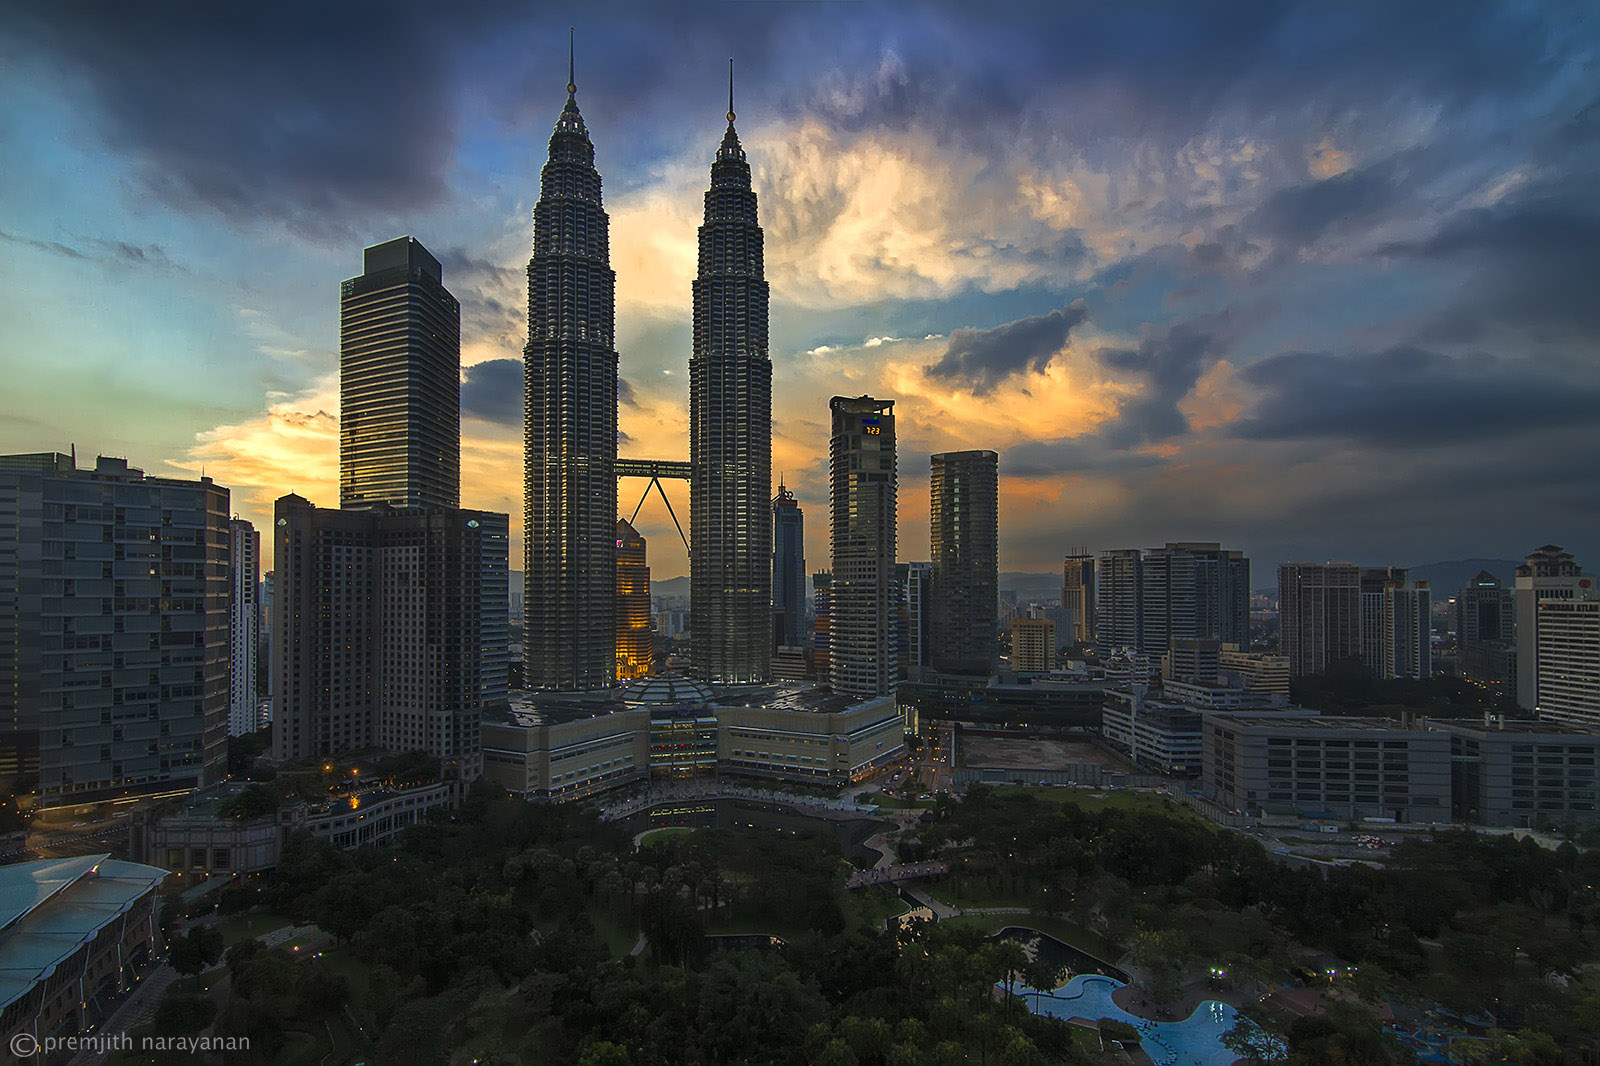 View of the Twin Towers after dusk.